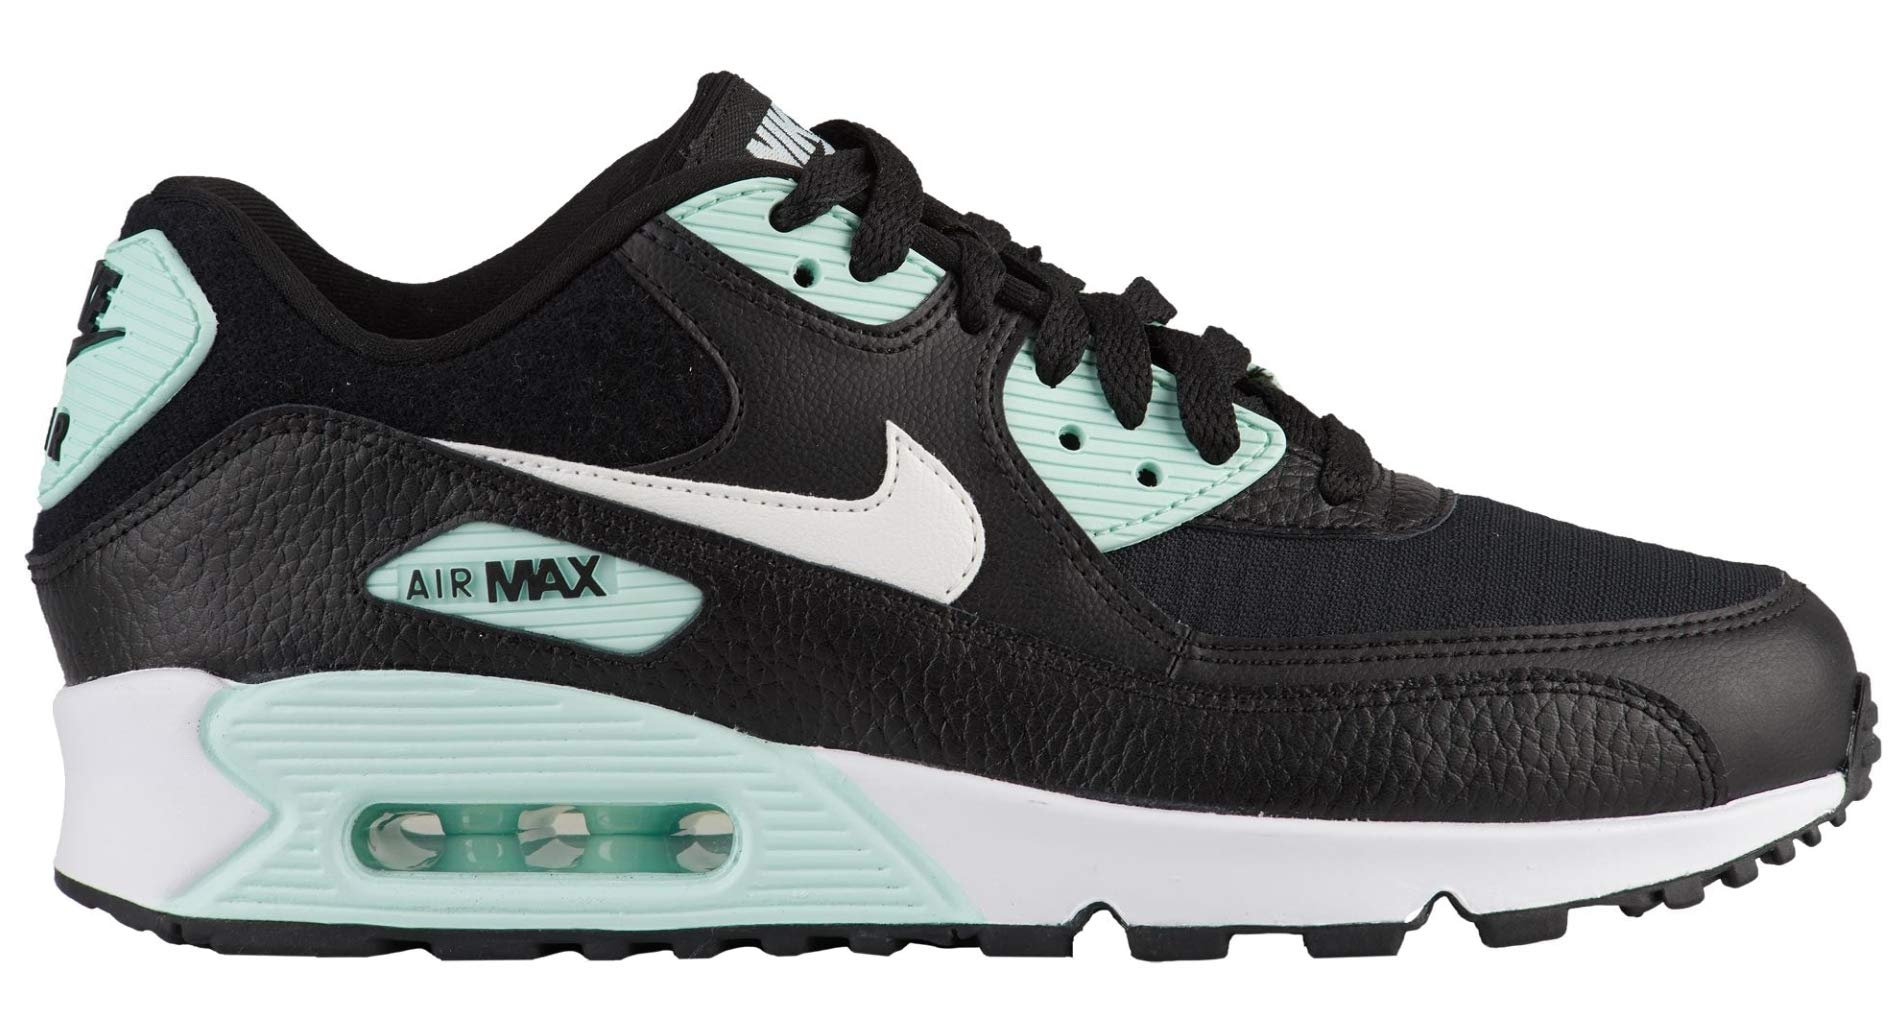 sale retailer ed467 d0bfd Galleon - NIKE Women s Air Max Axis Running Shoe, Black Summit White Igloo  White, 11